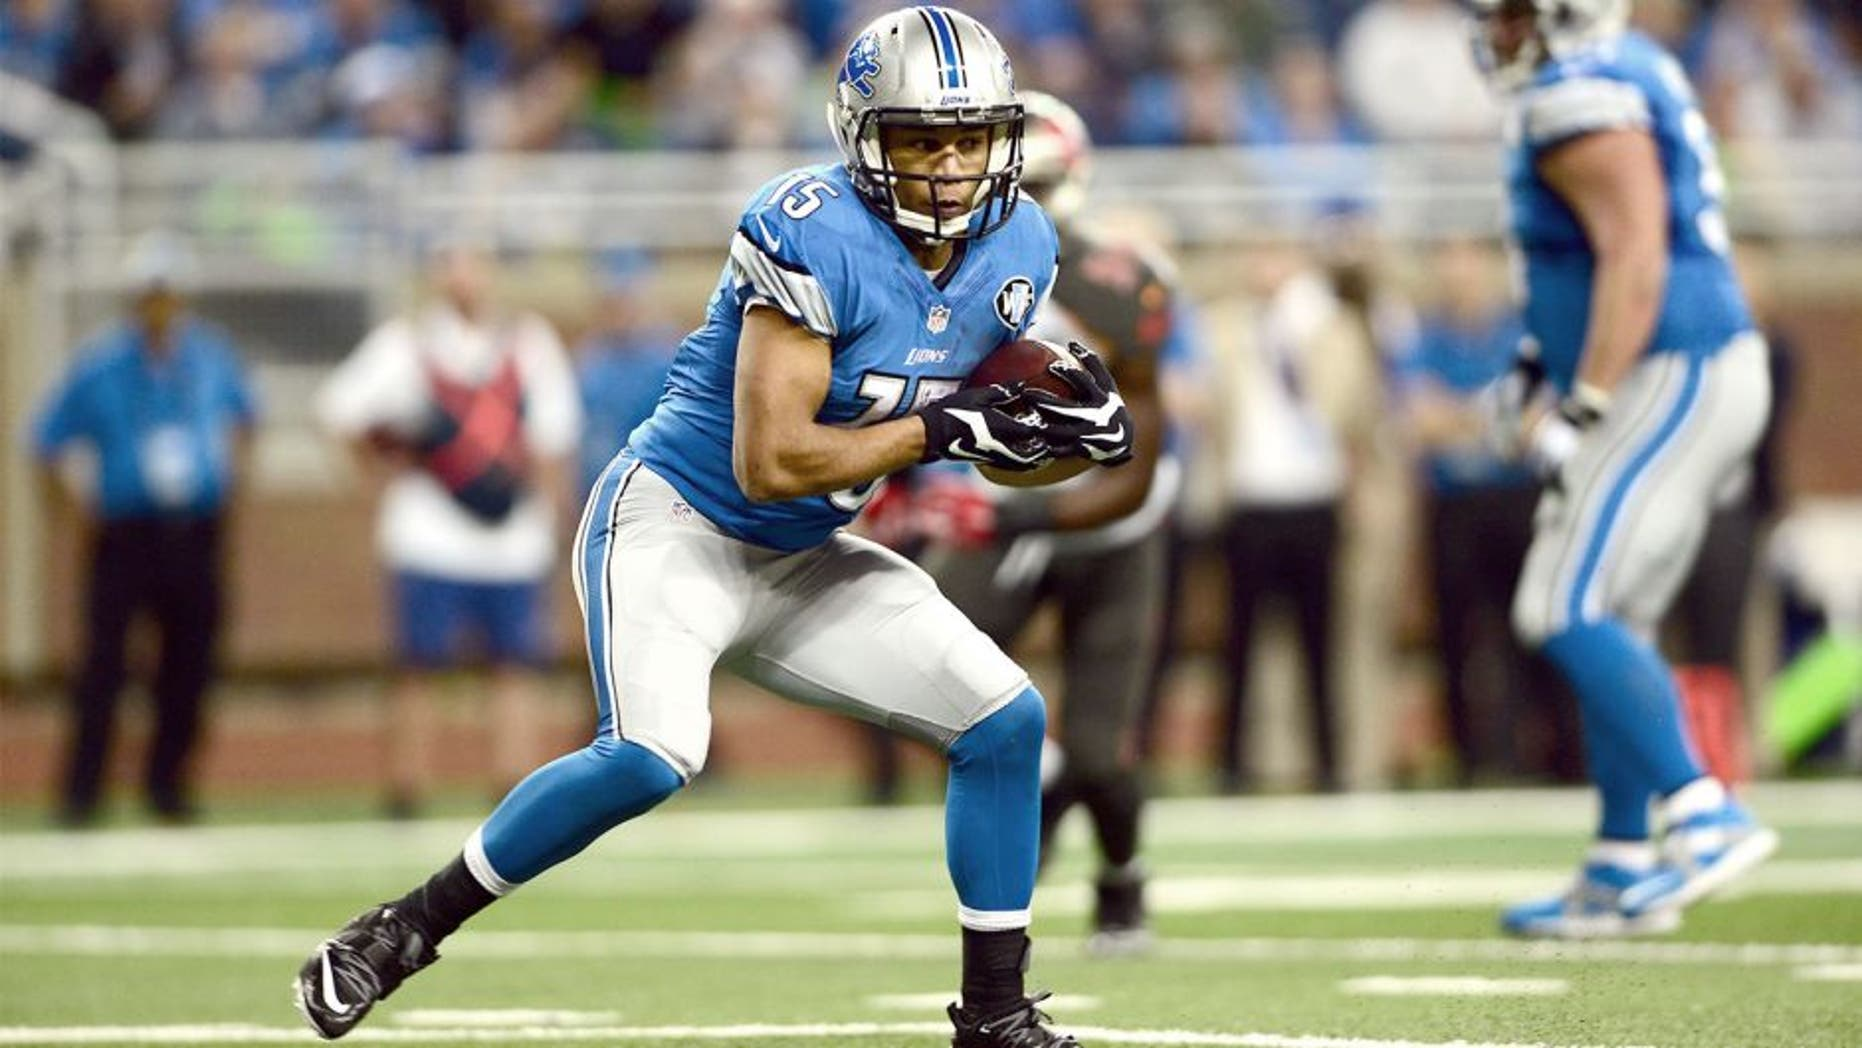 Dec 7, 2014; Detroit, MI, USA; Detroit Lions wide receiver Golden Tate (15) makes a catch and looks to get vertical during the first quarter against the Tampa Bay Buccaneers at Ford Field. Mandatory Credit: Andrew Weber-USA TODAY Sports